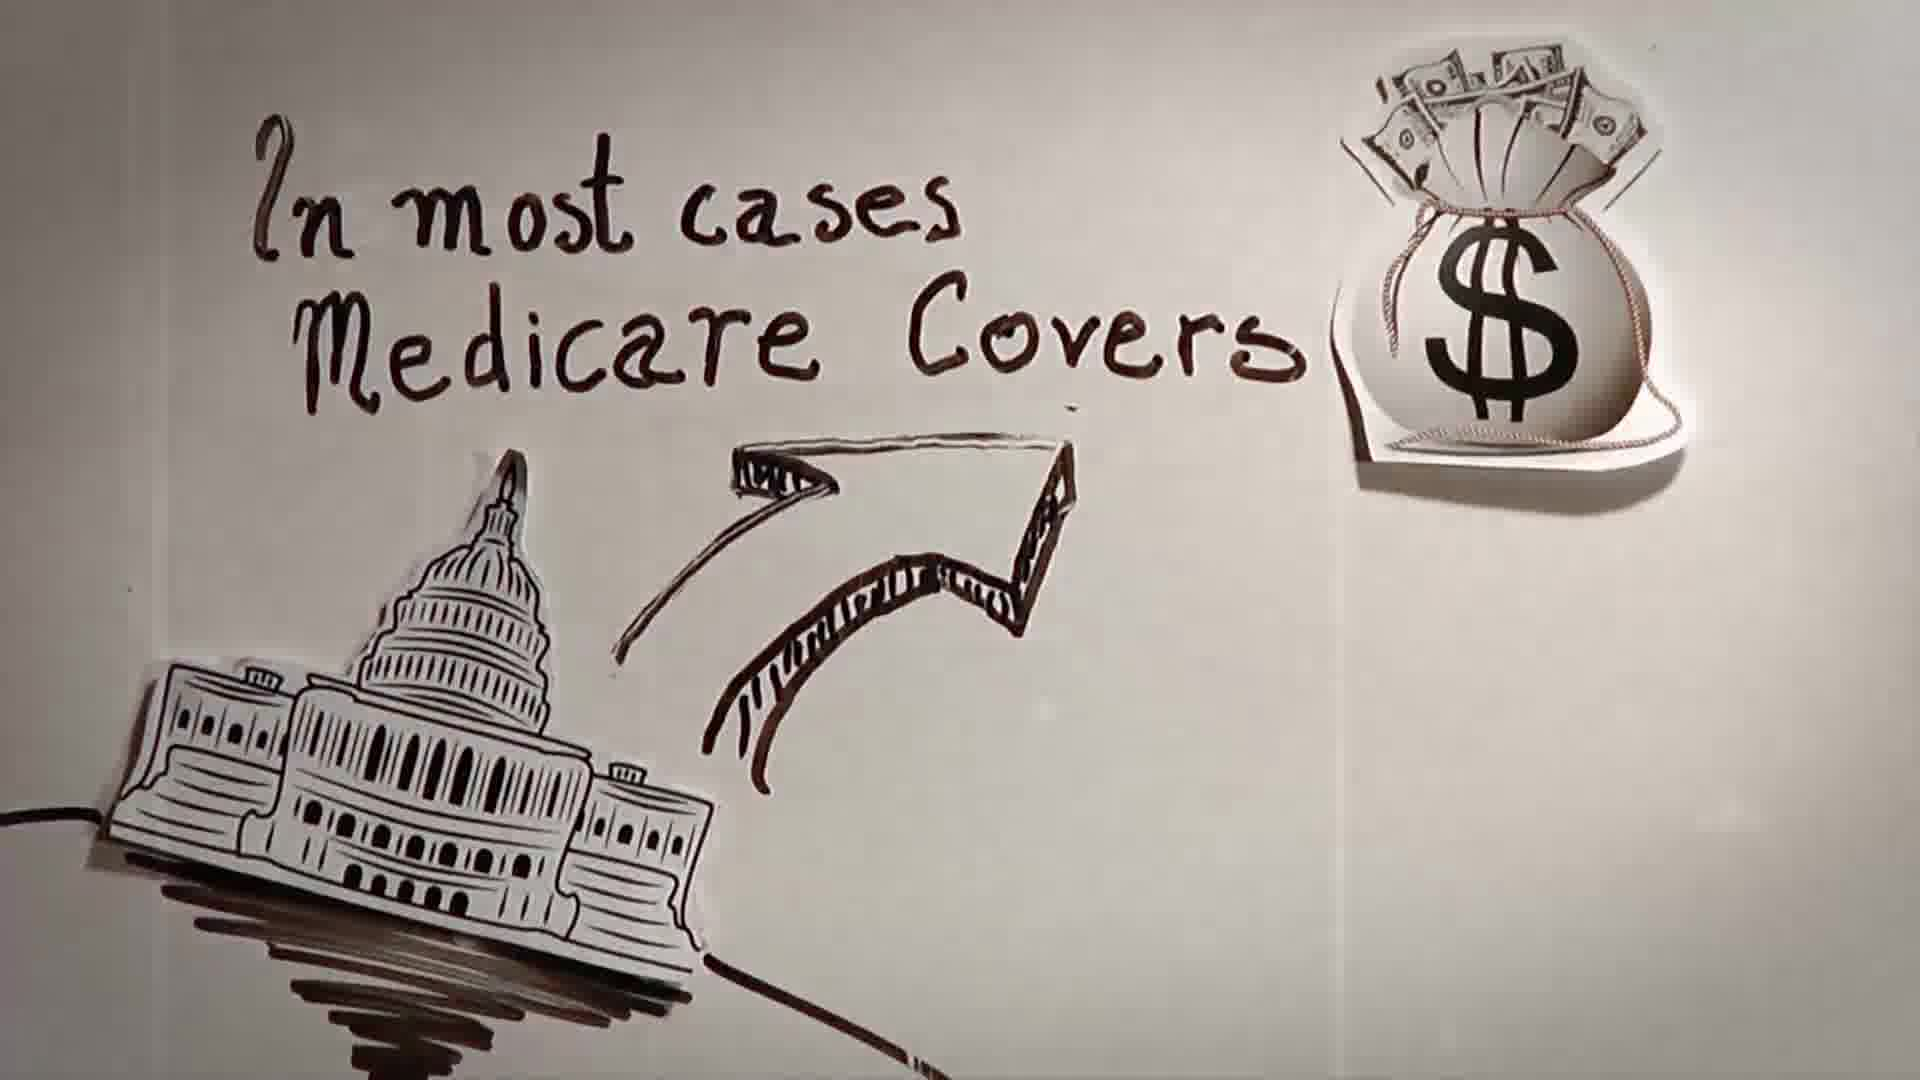 Maximum coverage with medicare and medicare supplements